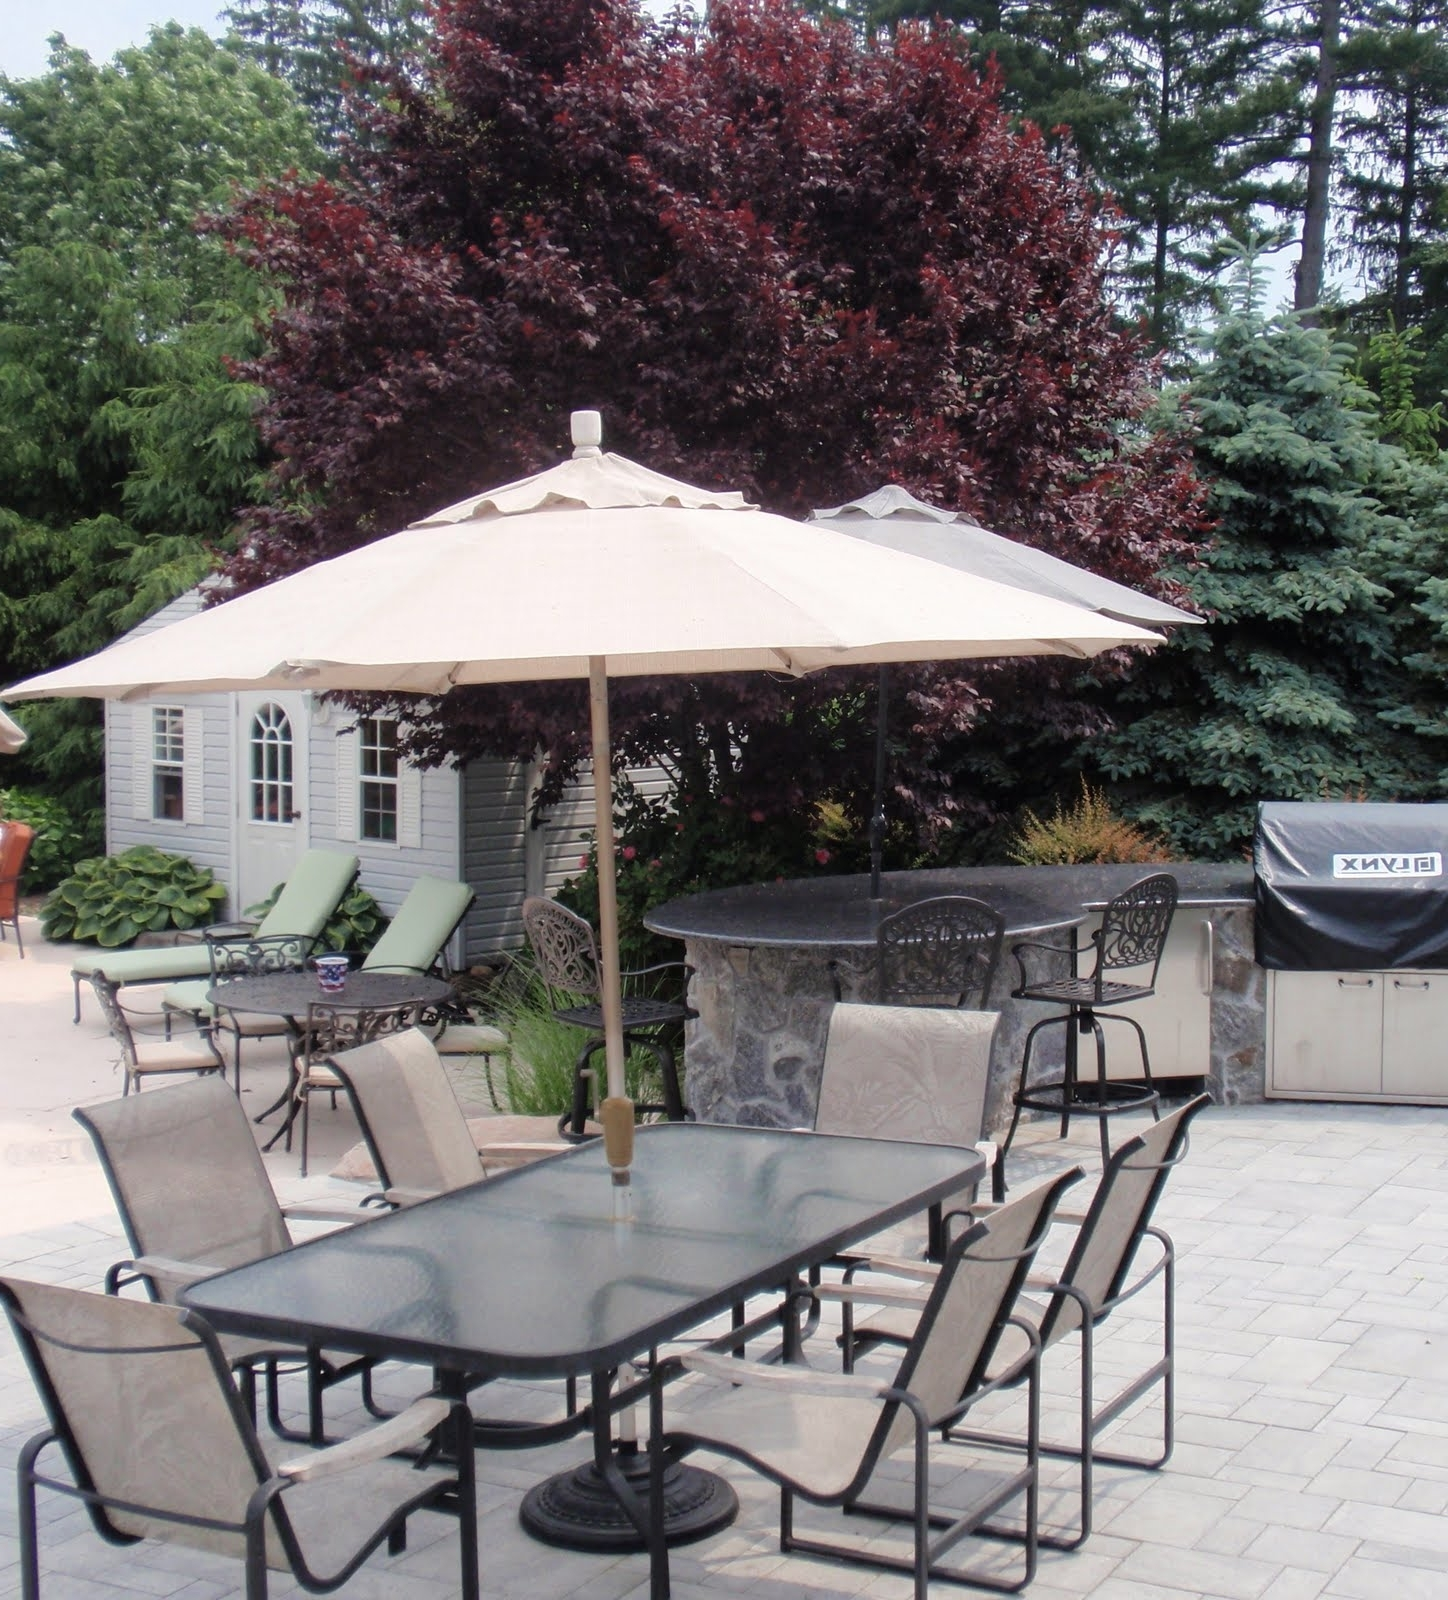 Patio Umbrellas With Table With Regard To Most Up To Date Fabulous Patio Table Umbrellas Exterior Red Target Patio Umbrellas (View 4 of 20)